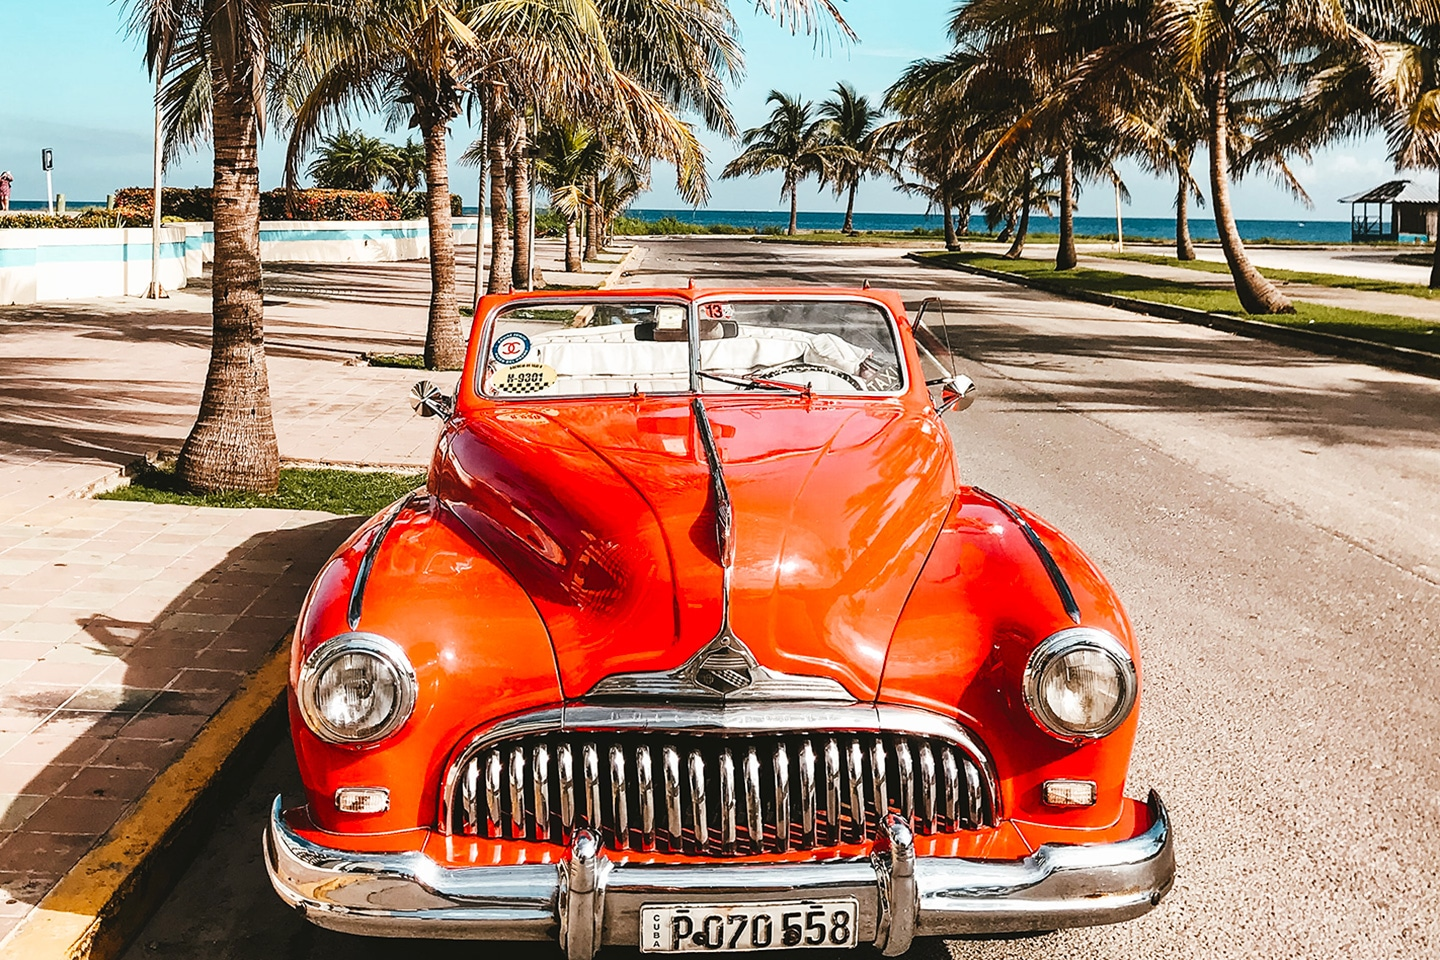 Old car at the beach in Cuba